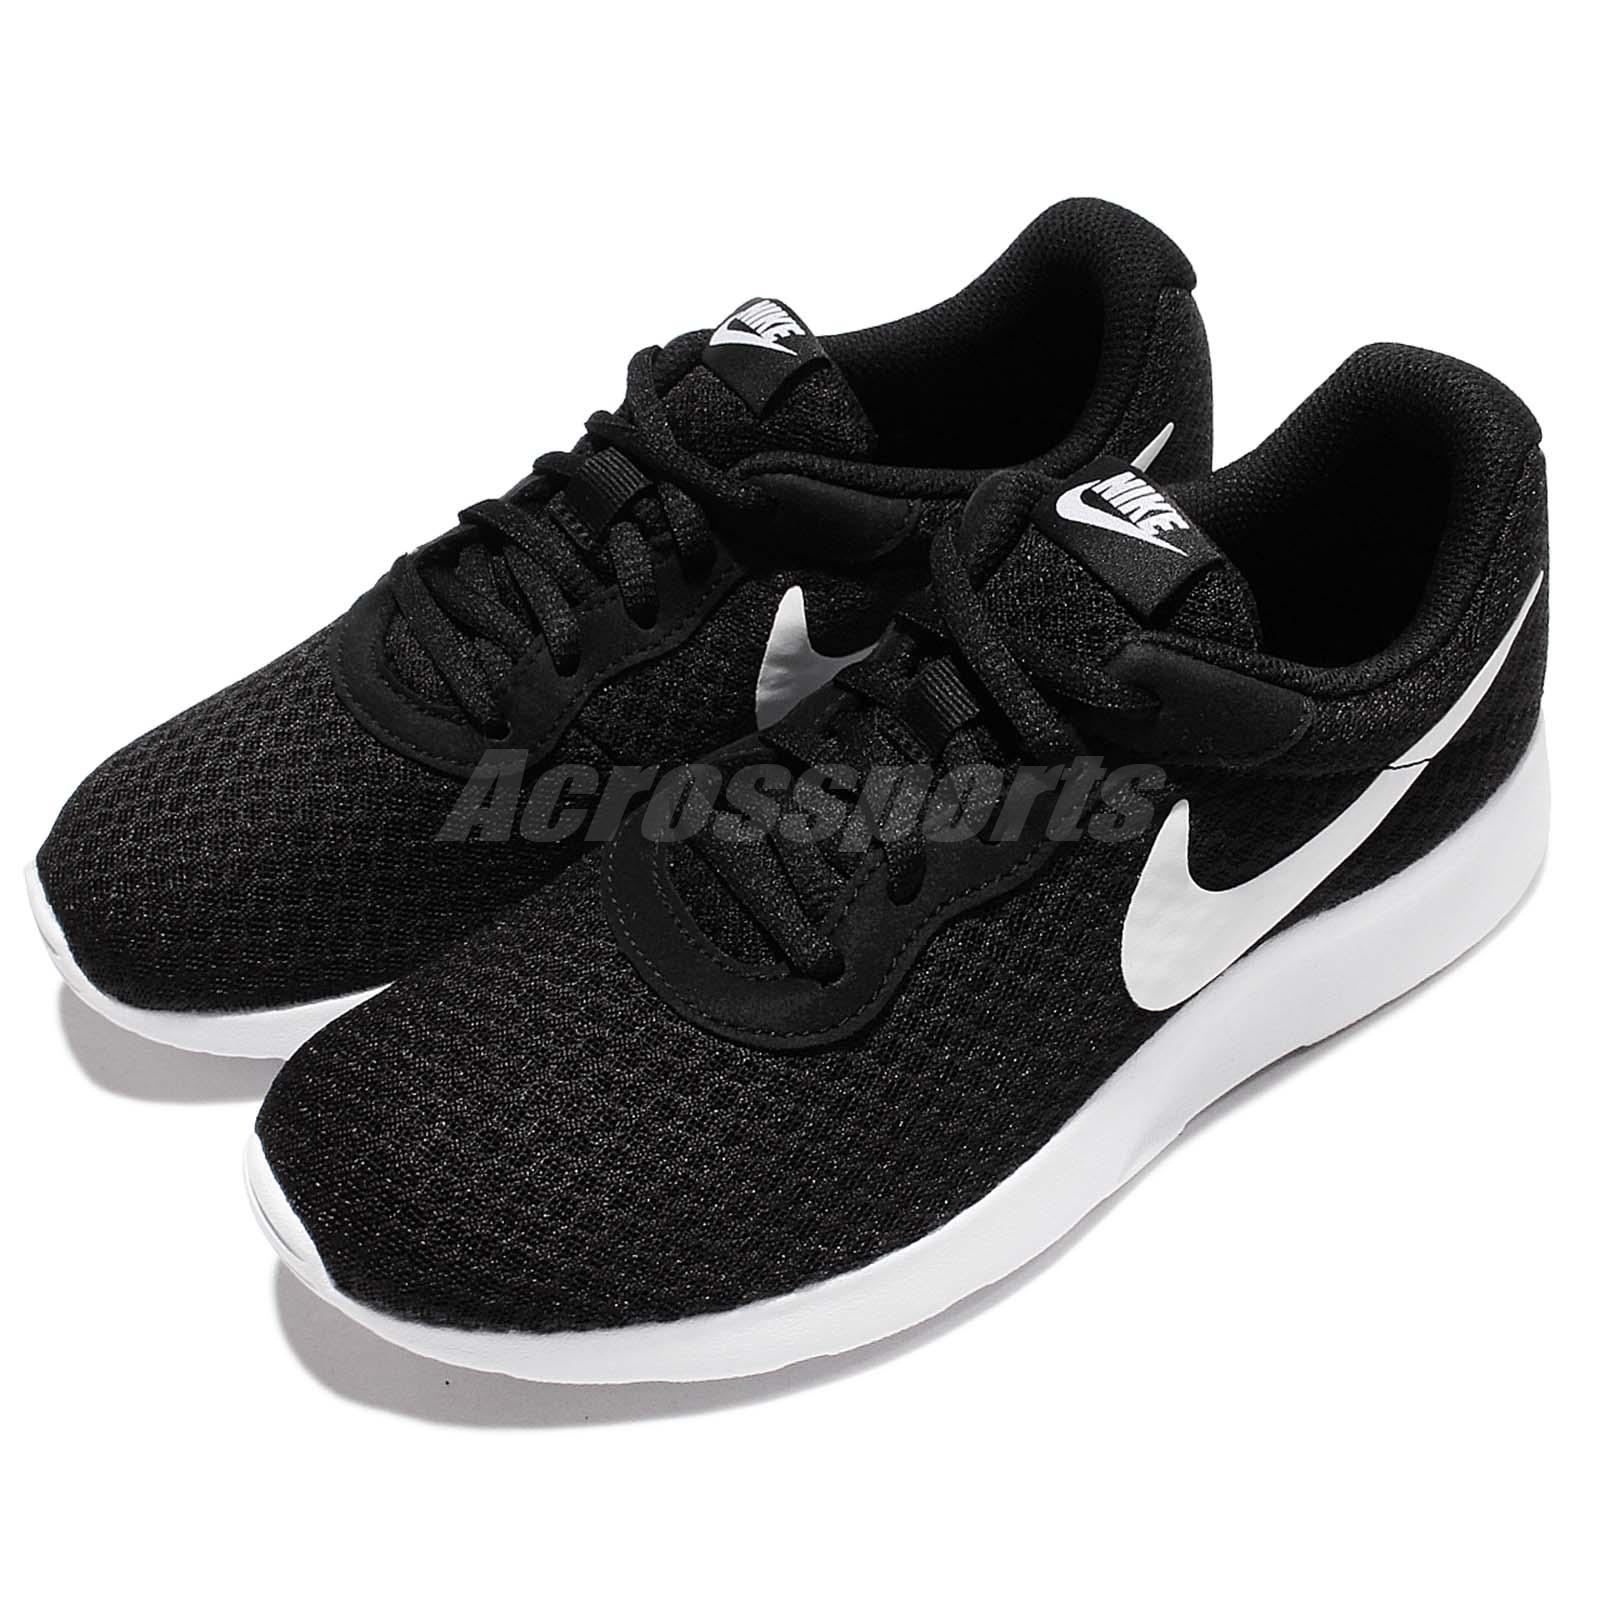 Original Nike Air Zoom Vomero 10 Womens Running Shoes Black/White Online Sale